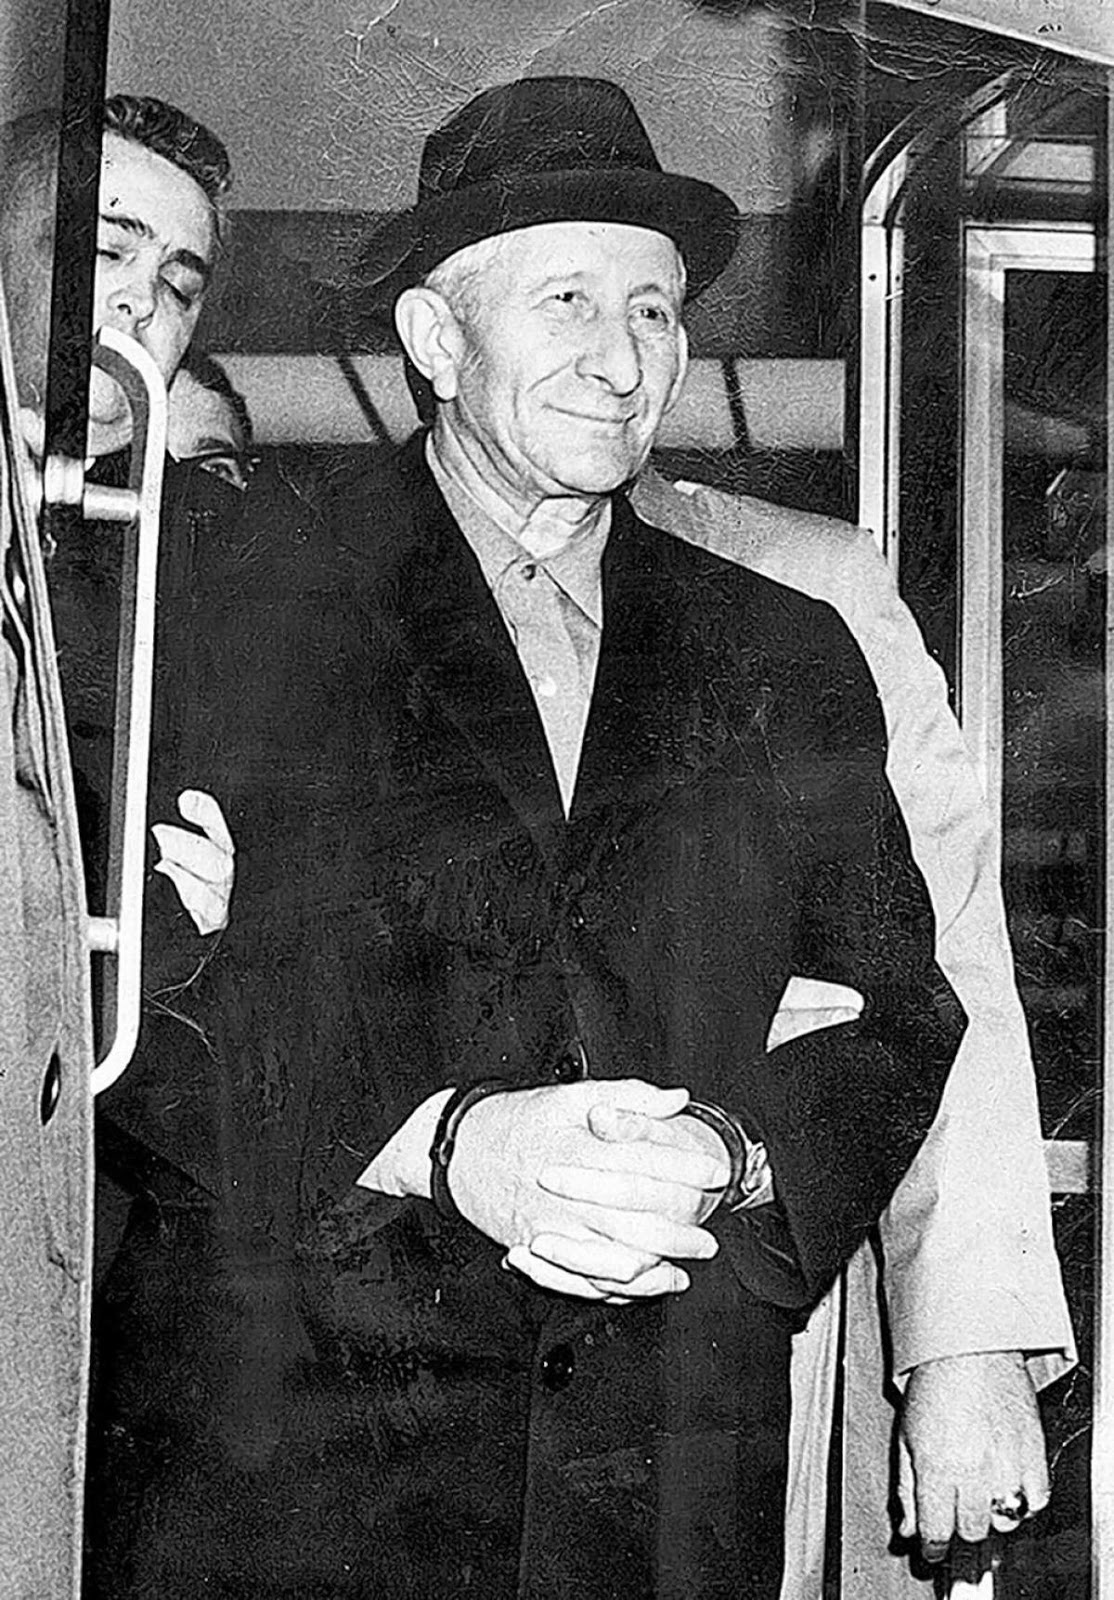 history the mob boss History background sal marcano is the boss of the marcano crime family he first started paying tribute to the commission circa 1948, which is presumably when he became the boss and ran casinos for the mob in havana.